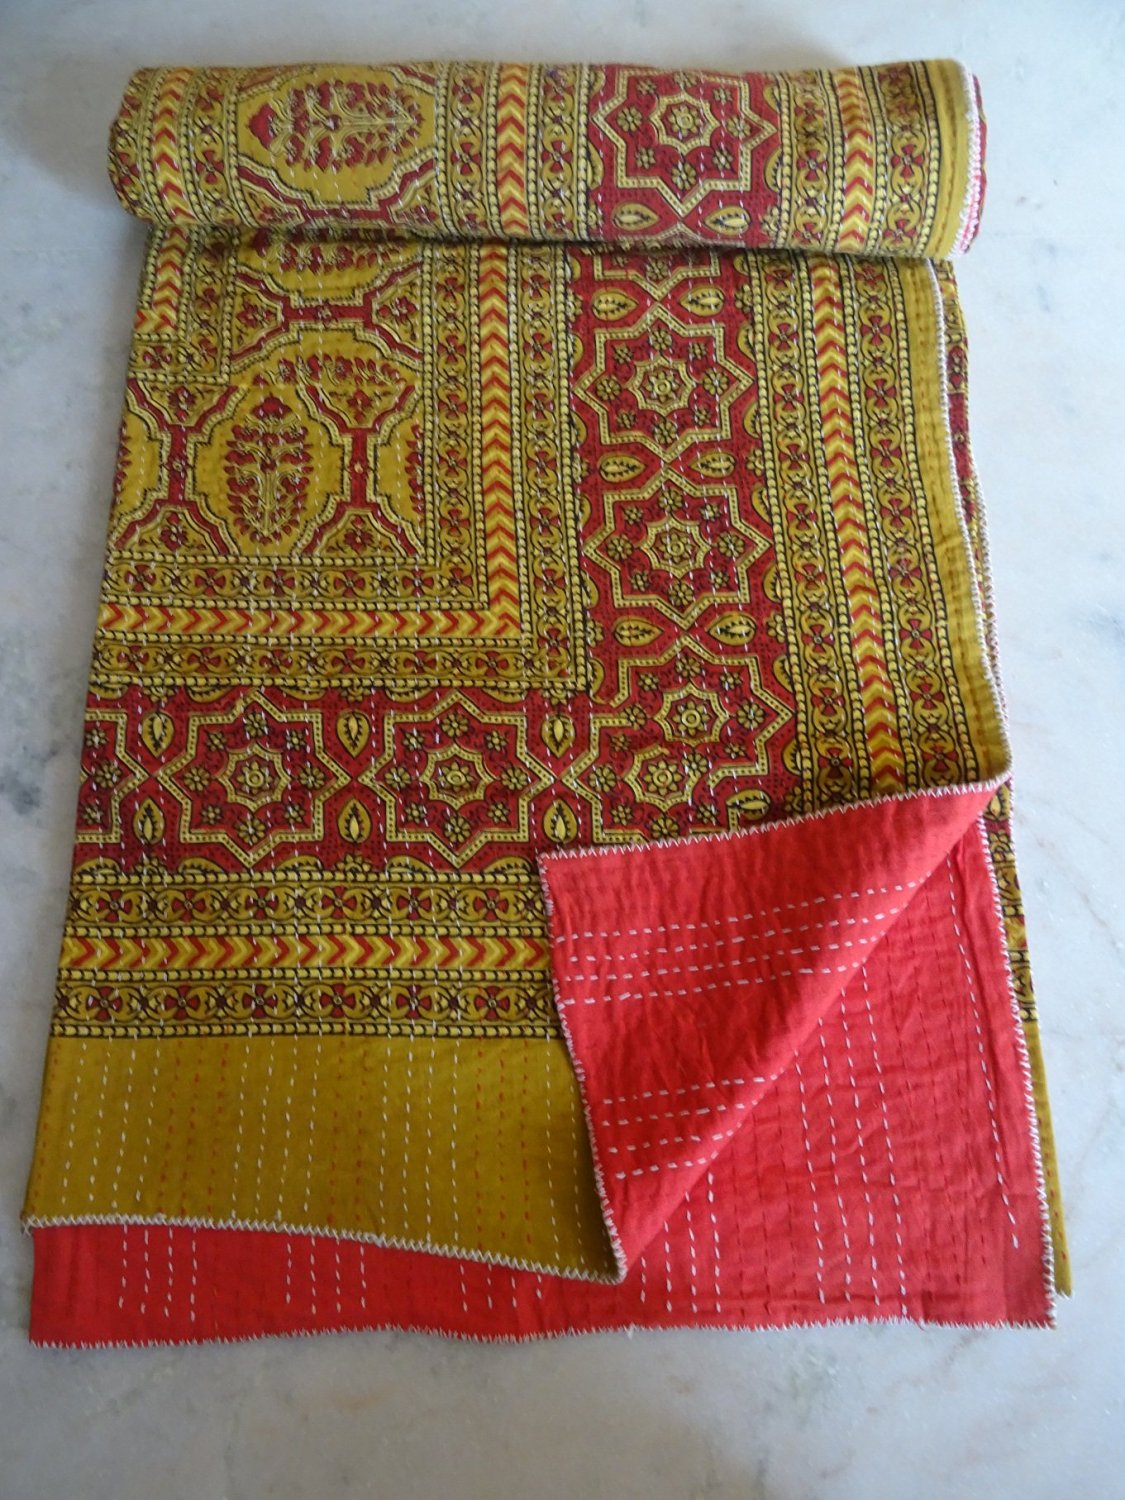 Tribal Asian Textiles Indian Throw Bedding, Applique Kantha Quilt, Cotton Indian Sari Quilted, Reversible Bedcover, Hand Stitches Ajrakh Block Print Quilt, Indian Throw Boho Bedding Gudri Ralli